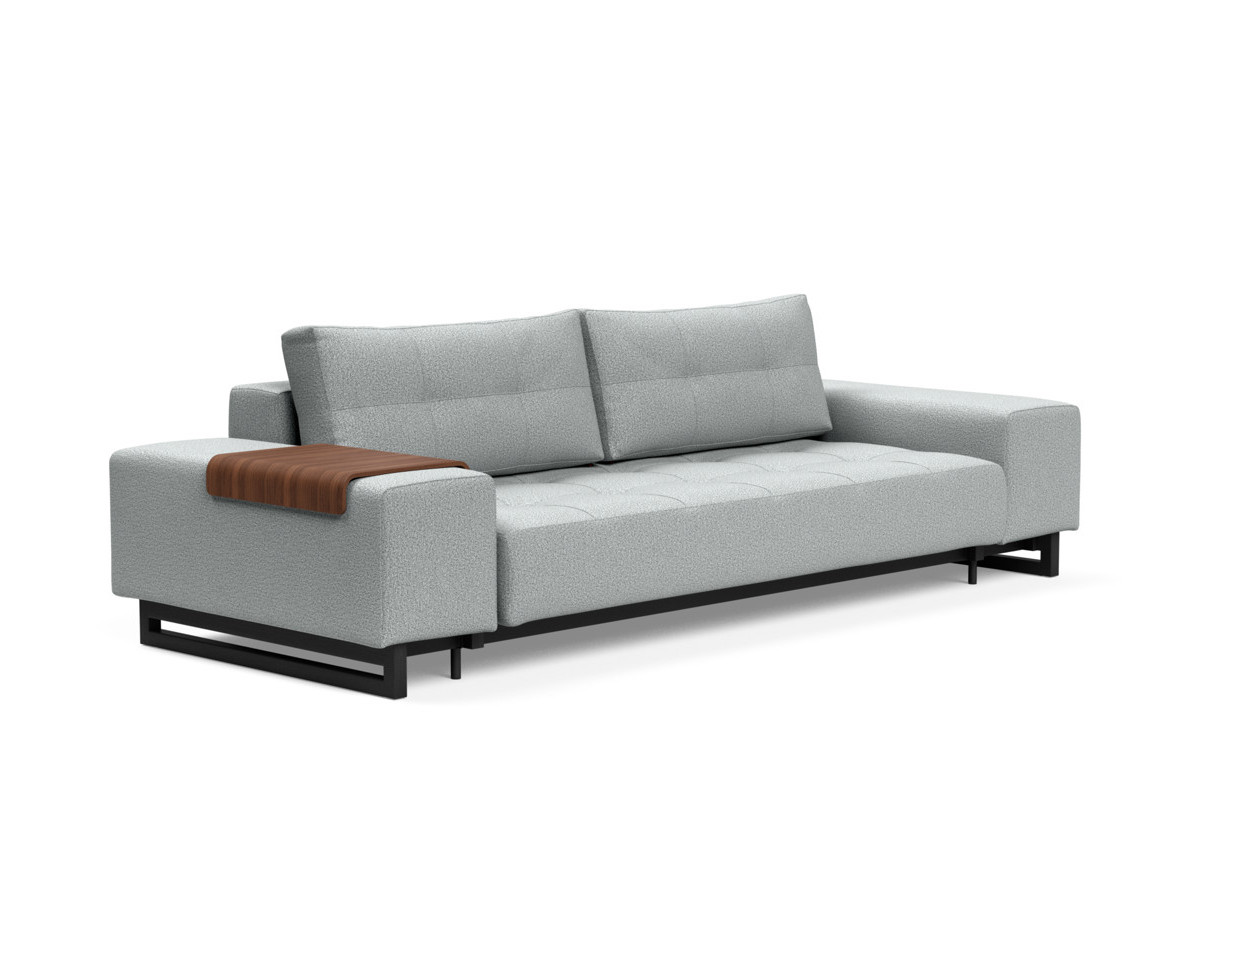 Picture of: Grand Deluxe Excess Sofa Bed Queen Size Melange Light Gray By Innovation